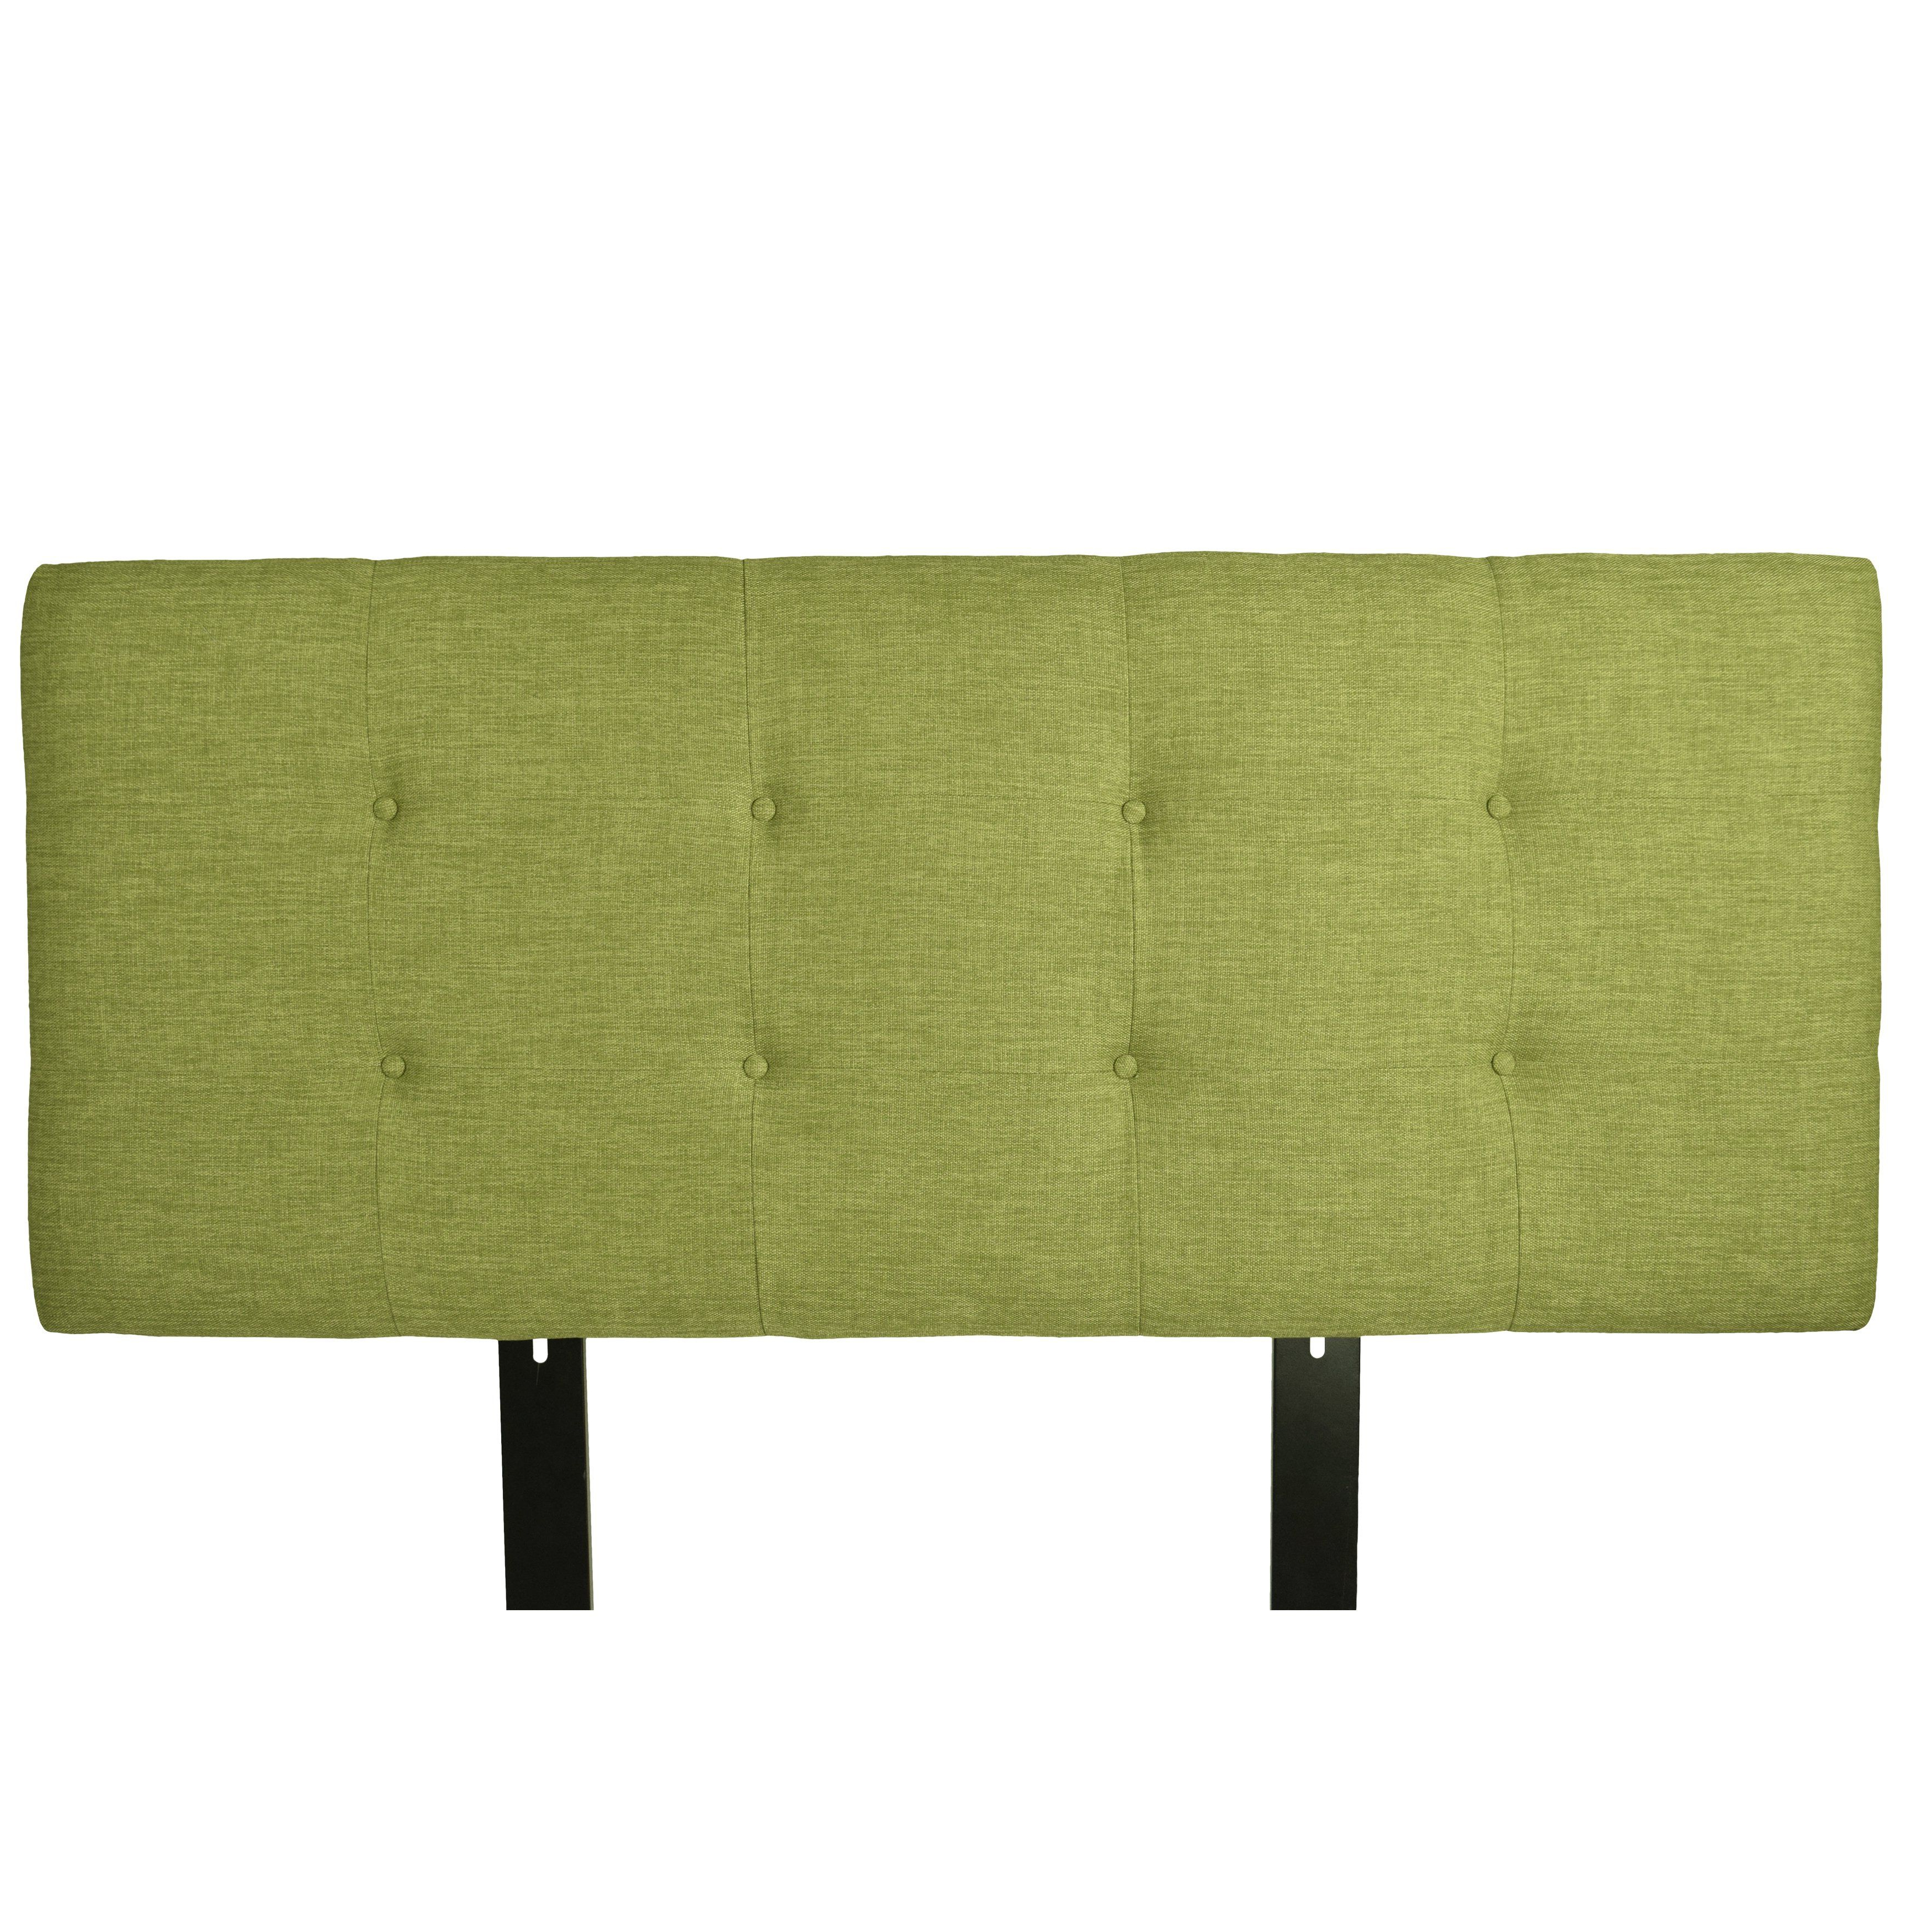 Best And Newest Mjl Furniture Ali Button Tufted Key Largo Grass Upholstered With Parsons Travertine Top & Brass Base 48X16 Console Tables (View 2 of 20)